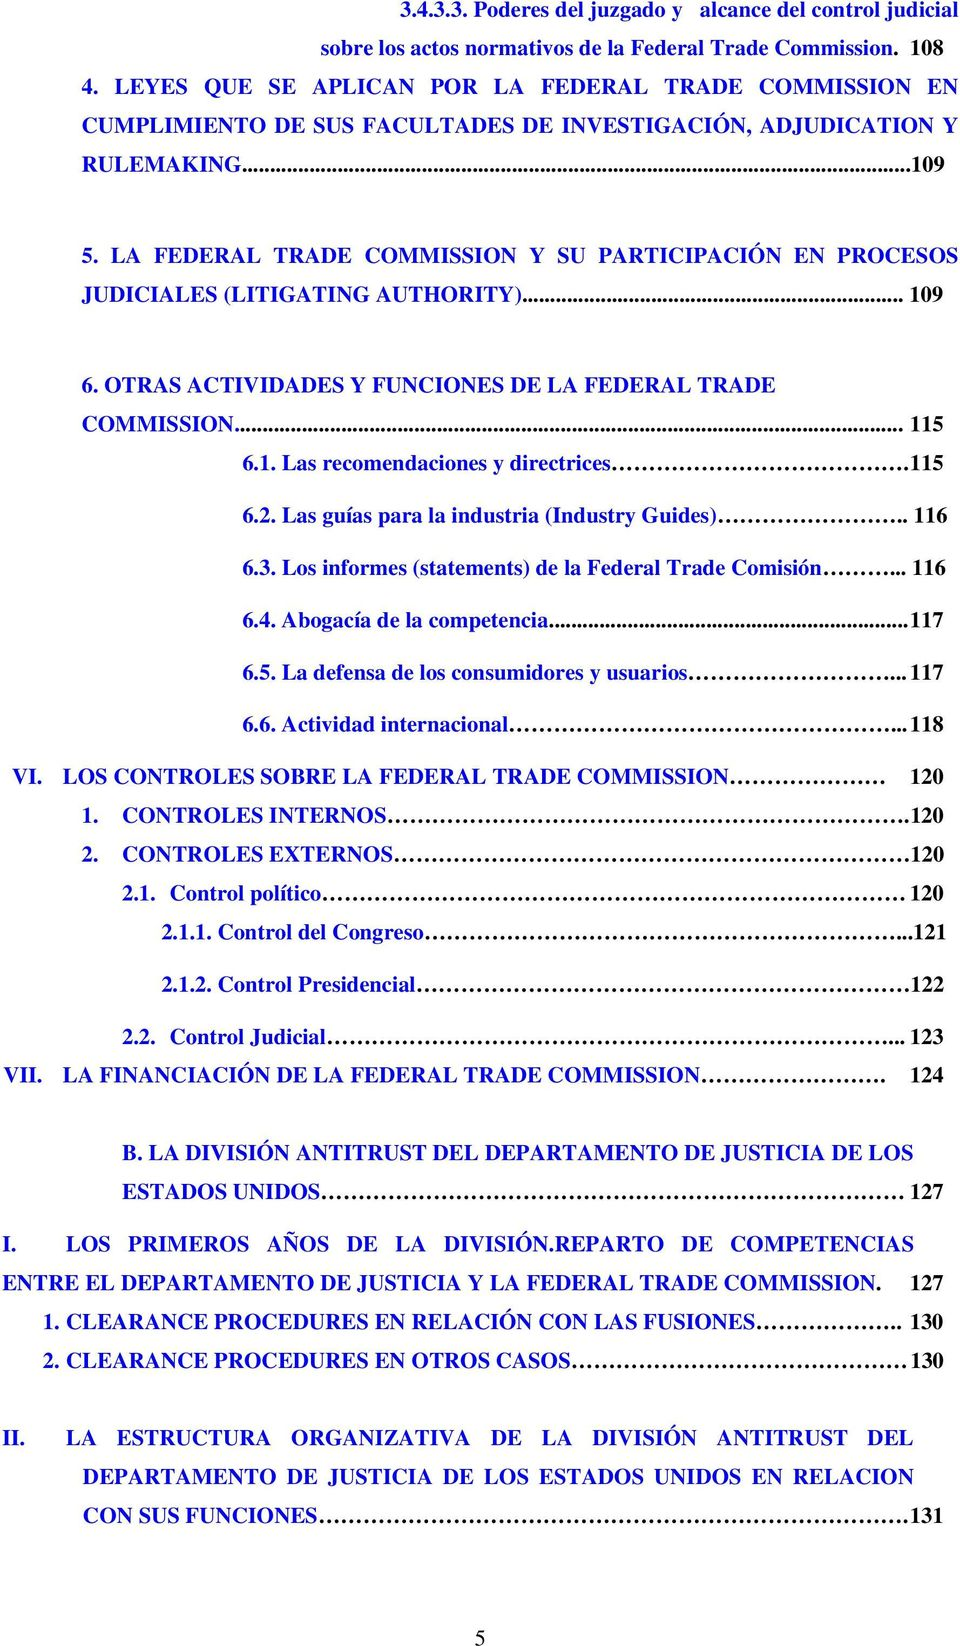 LA FEDERAL TRADE COMMISSION Y SU PARTICIPACIÓN EN PROCESOS JUDICIALES (LITIGATING AUTHORITY)... 109 6. OTRAS ACTIVIDADES Y FUNCIONES DE LA FEDERAL TRADE COMMISSION... 115 6.1. Las recomendaciones y directrices.